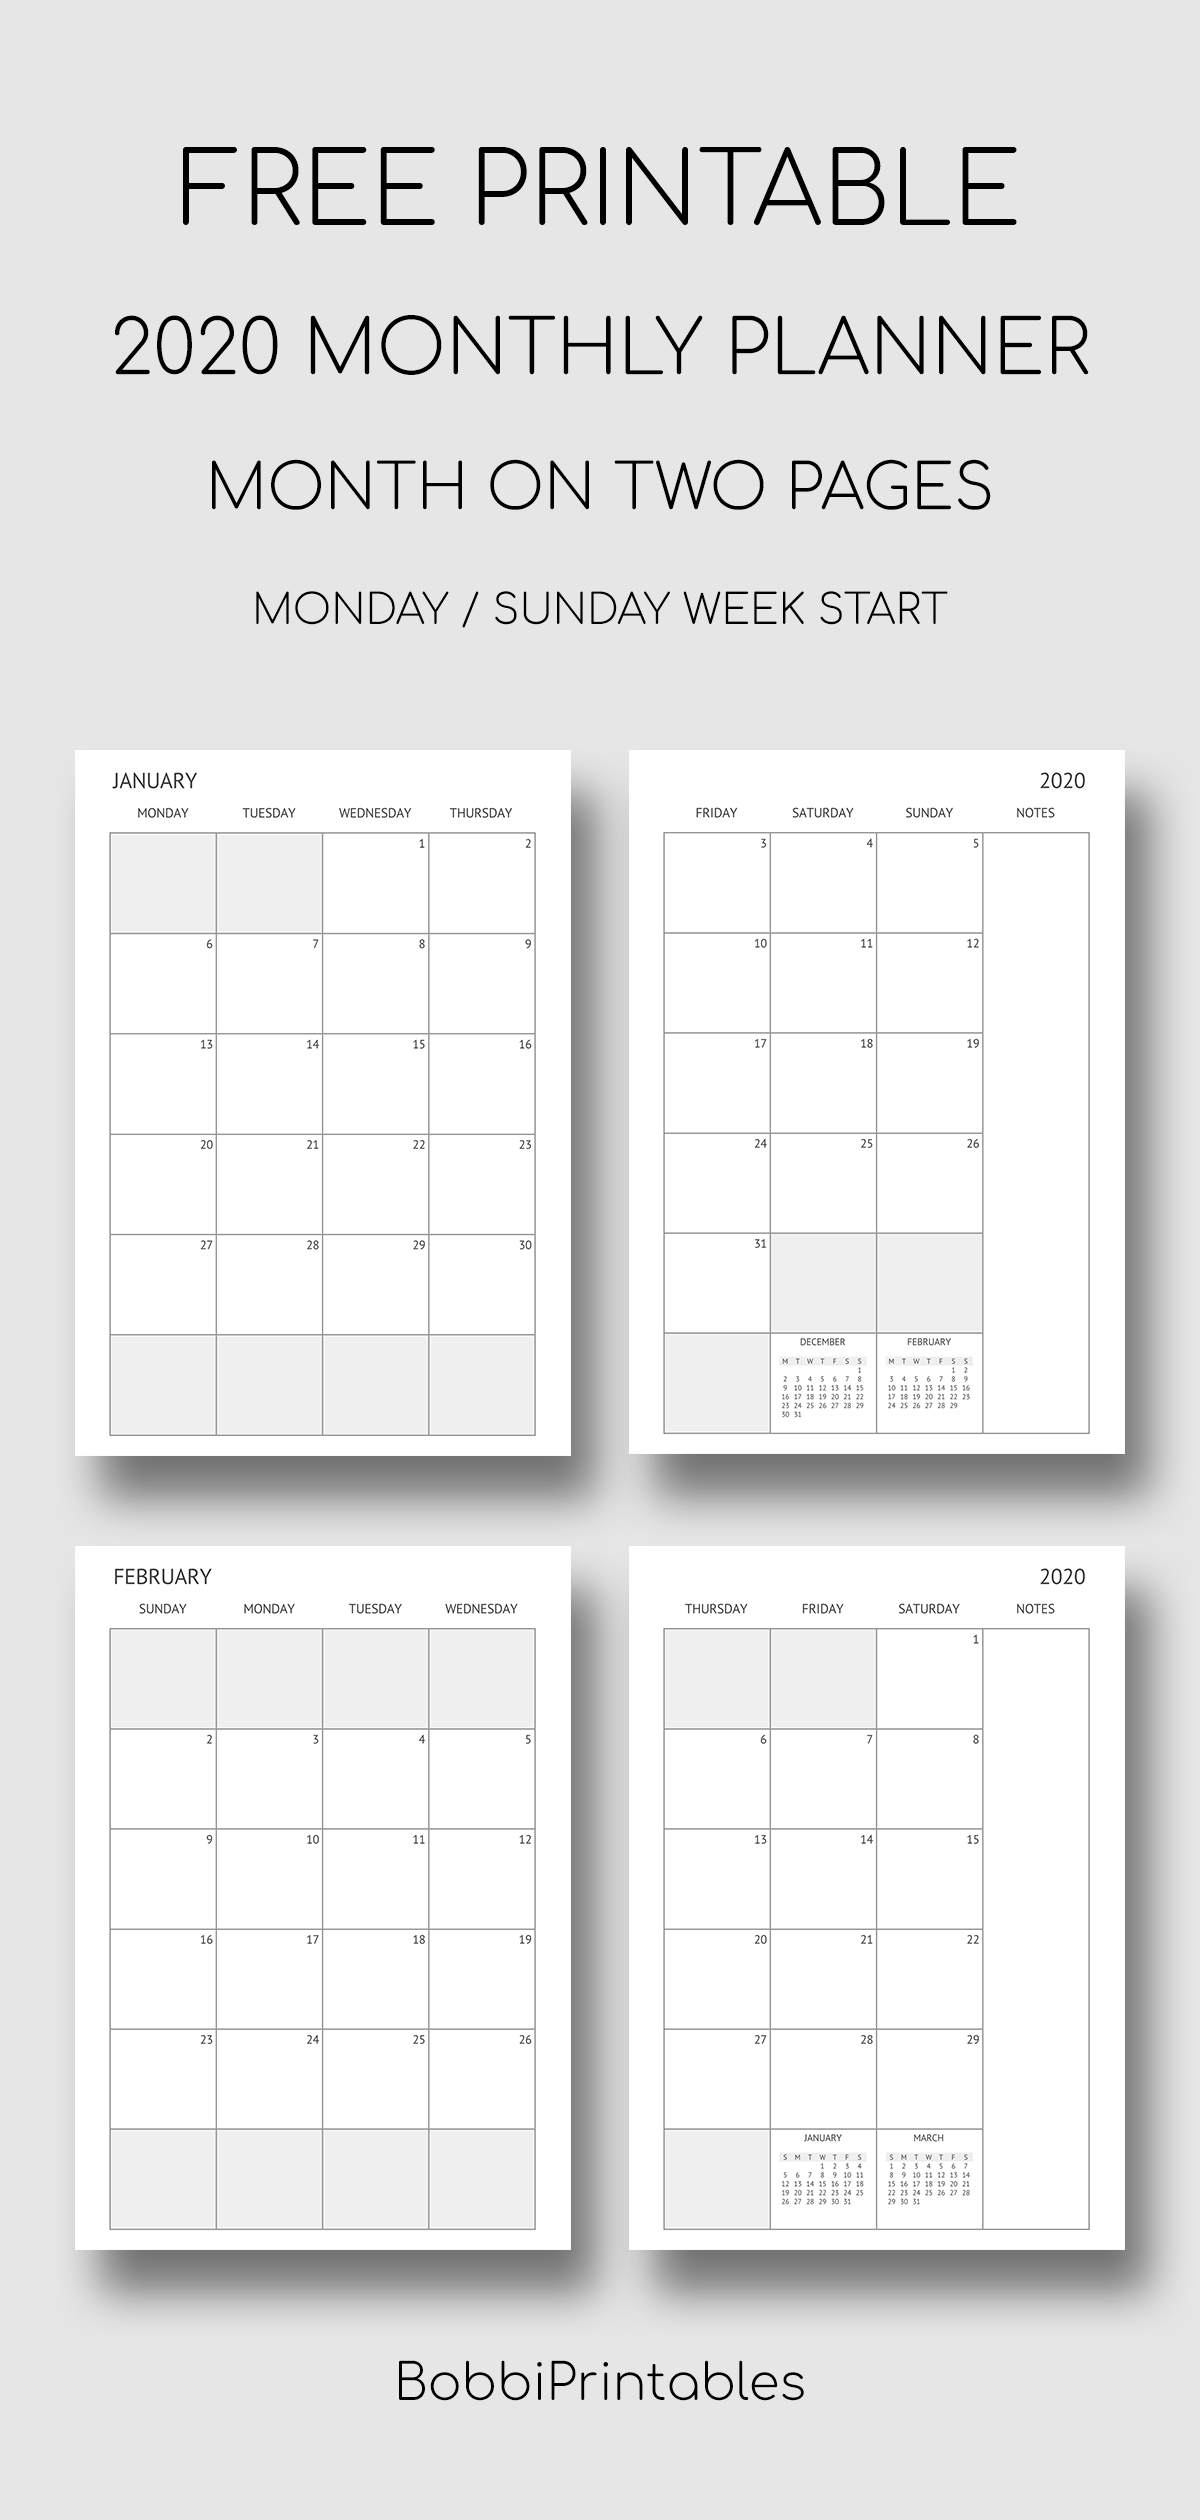 Printable 2020 Monthly Planner In 2020 Free Printable Monthly Planner Free Planner Pages Study Planner Printable Free